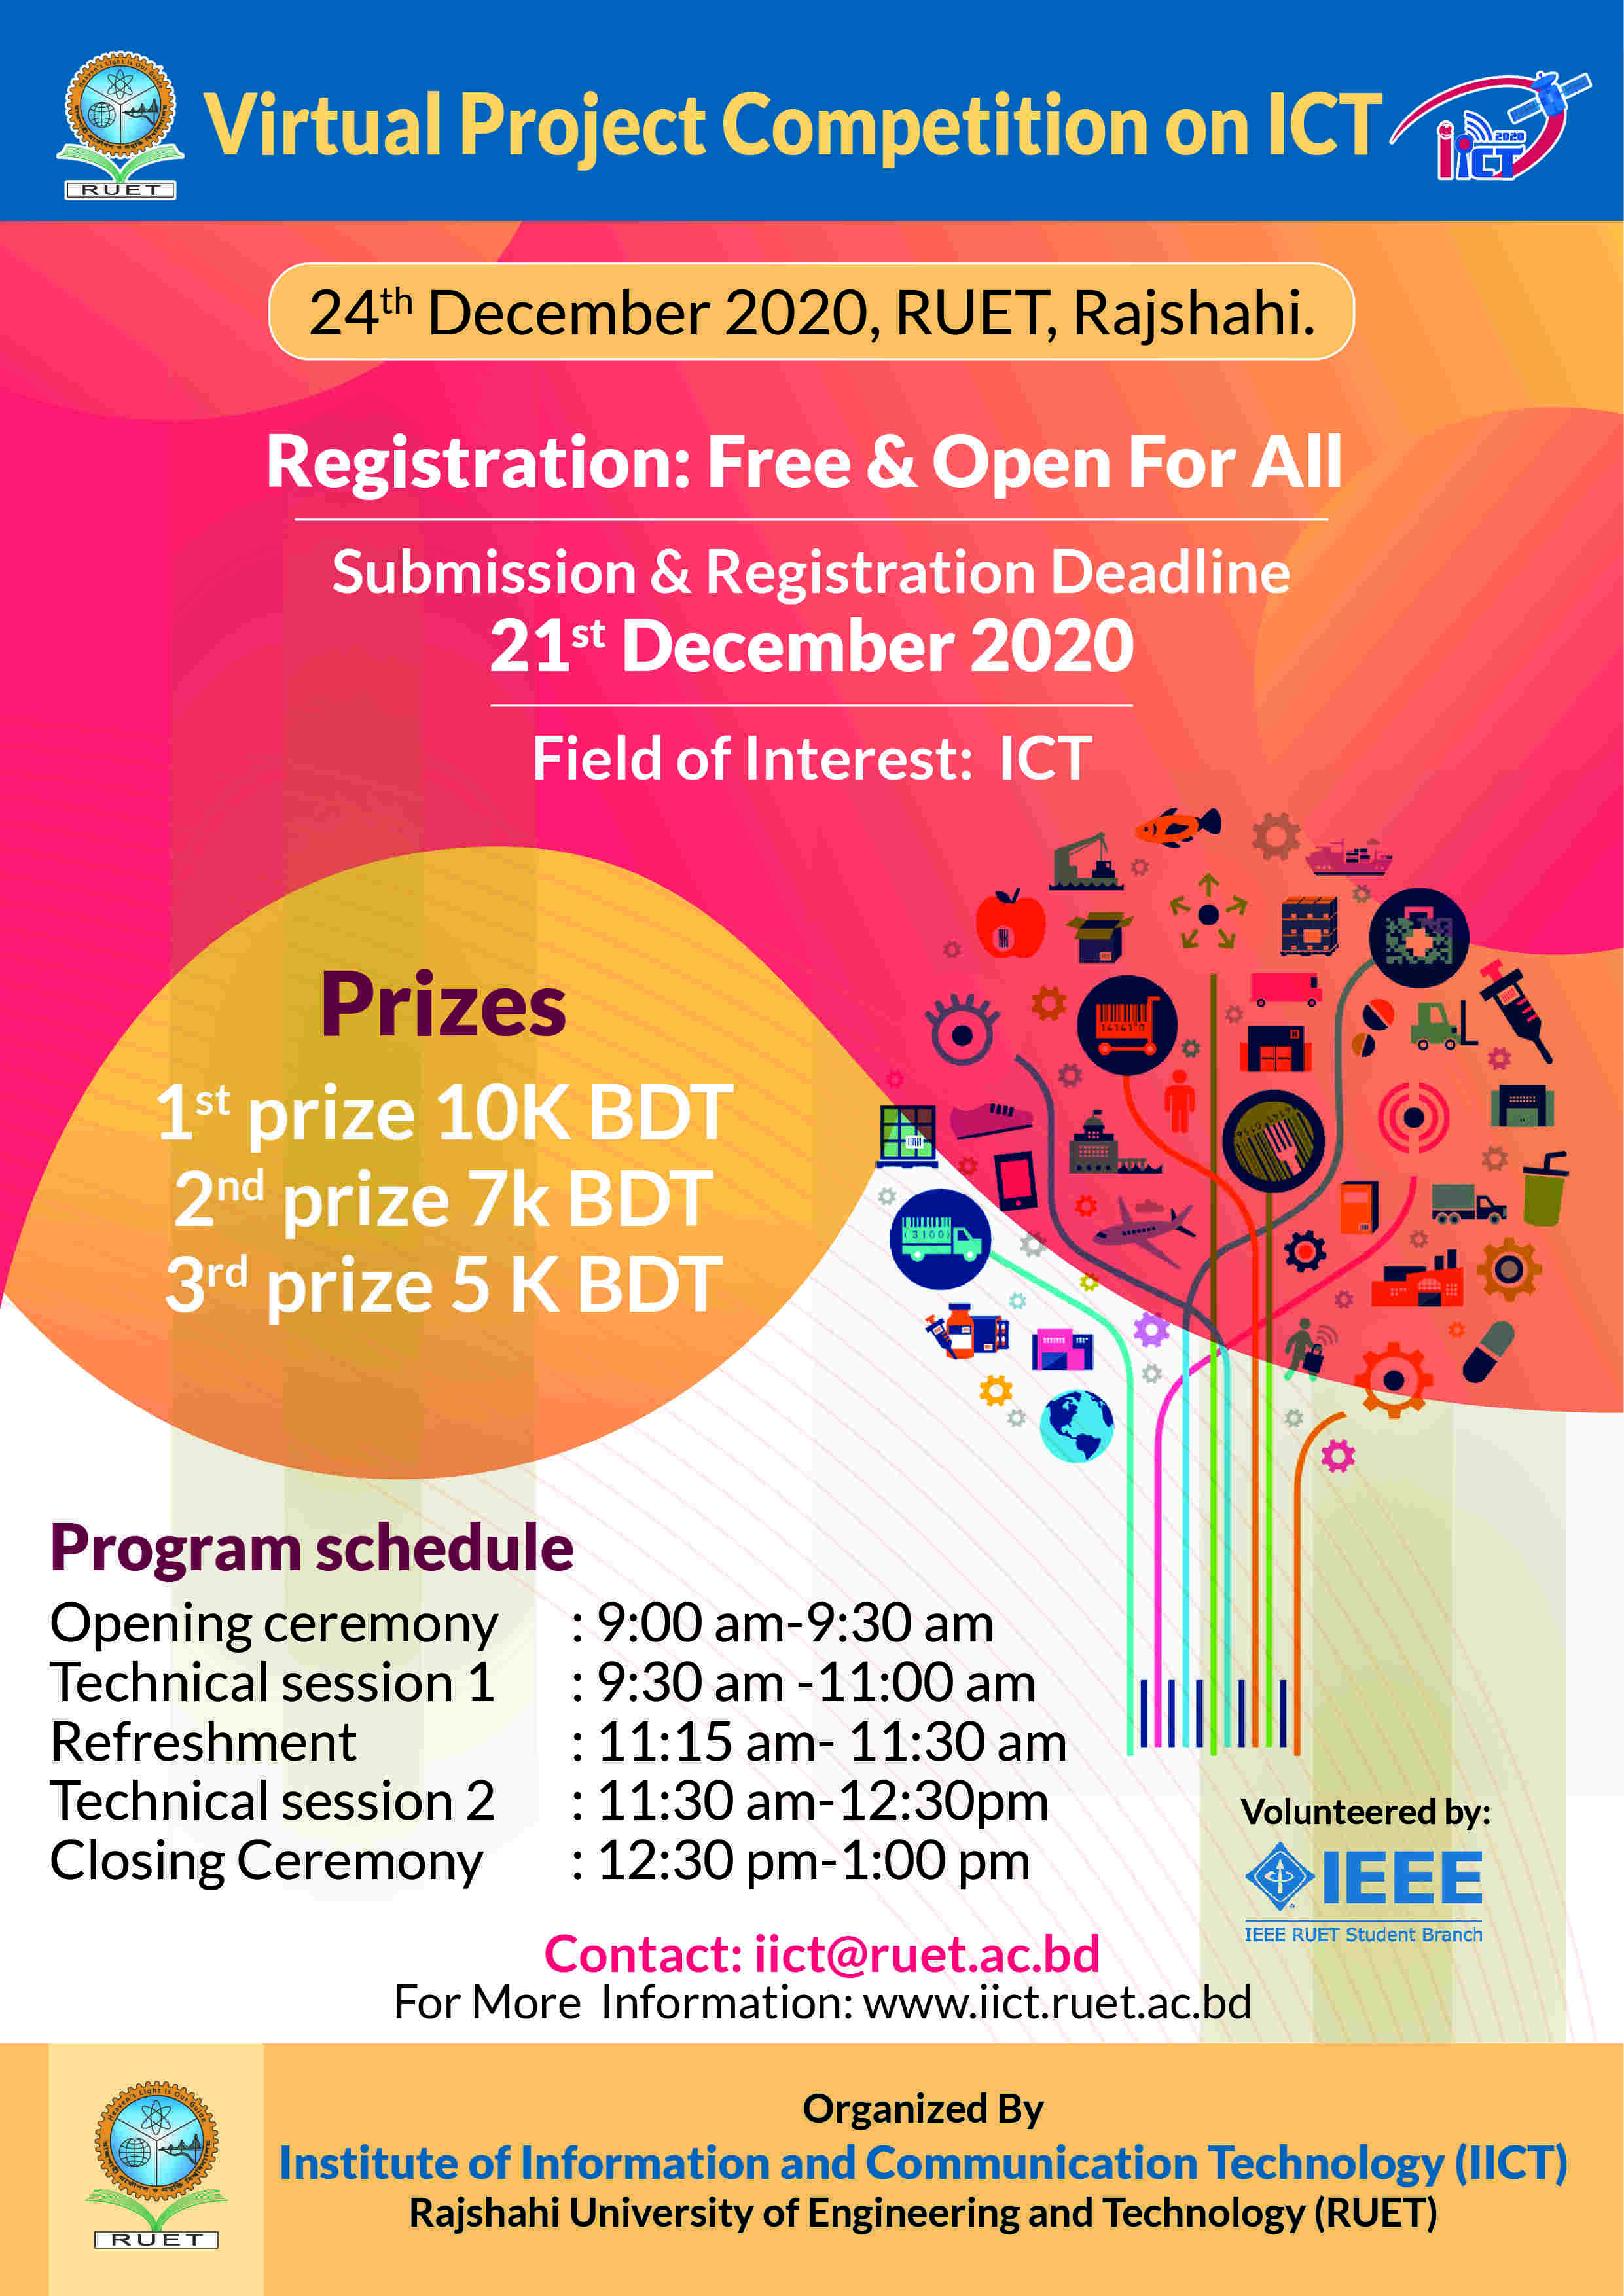 Virtual Project Competition on ICT